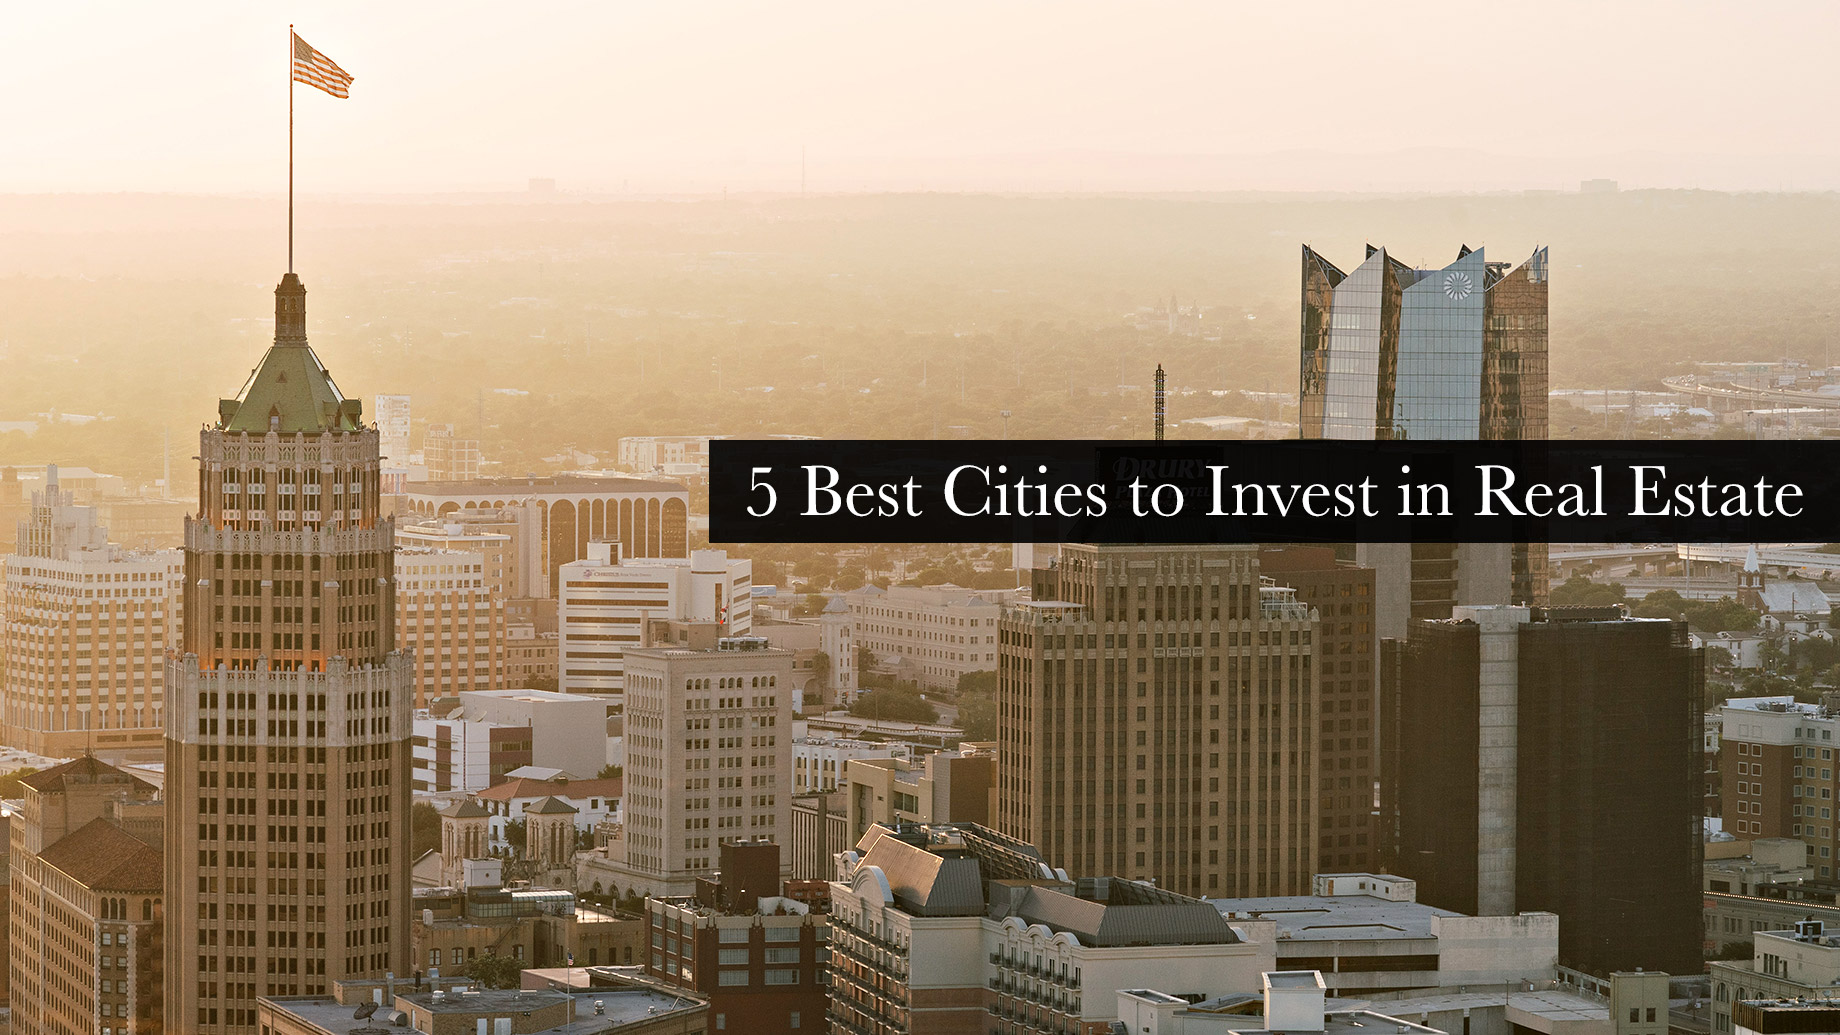 5 Best Cities to Invest in Real Estate